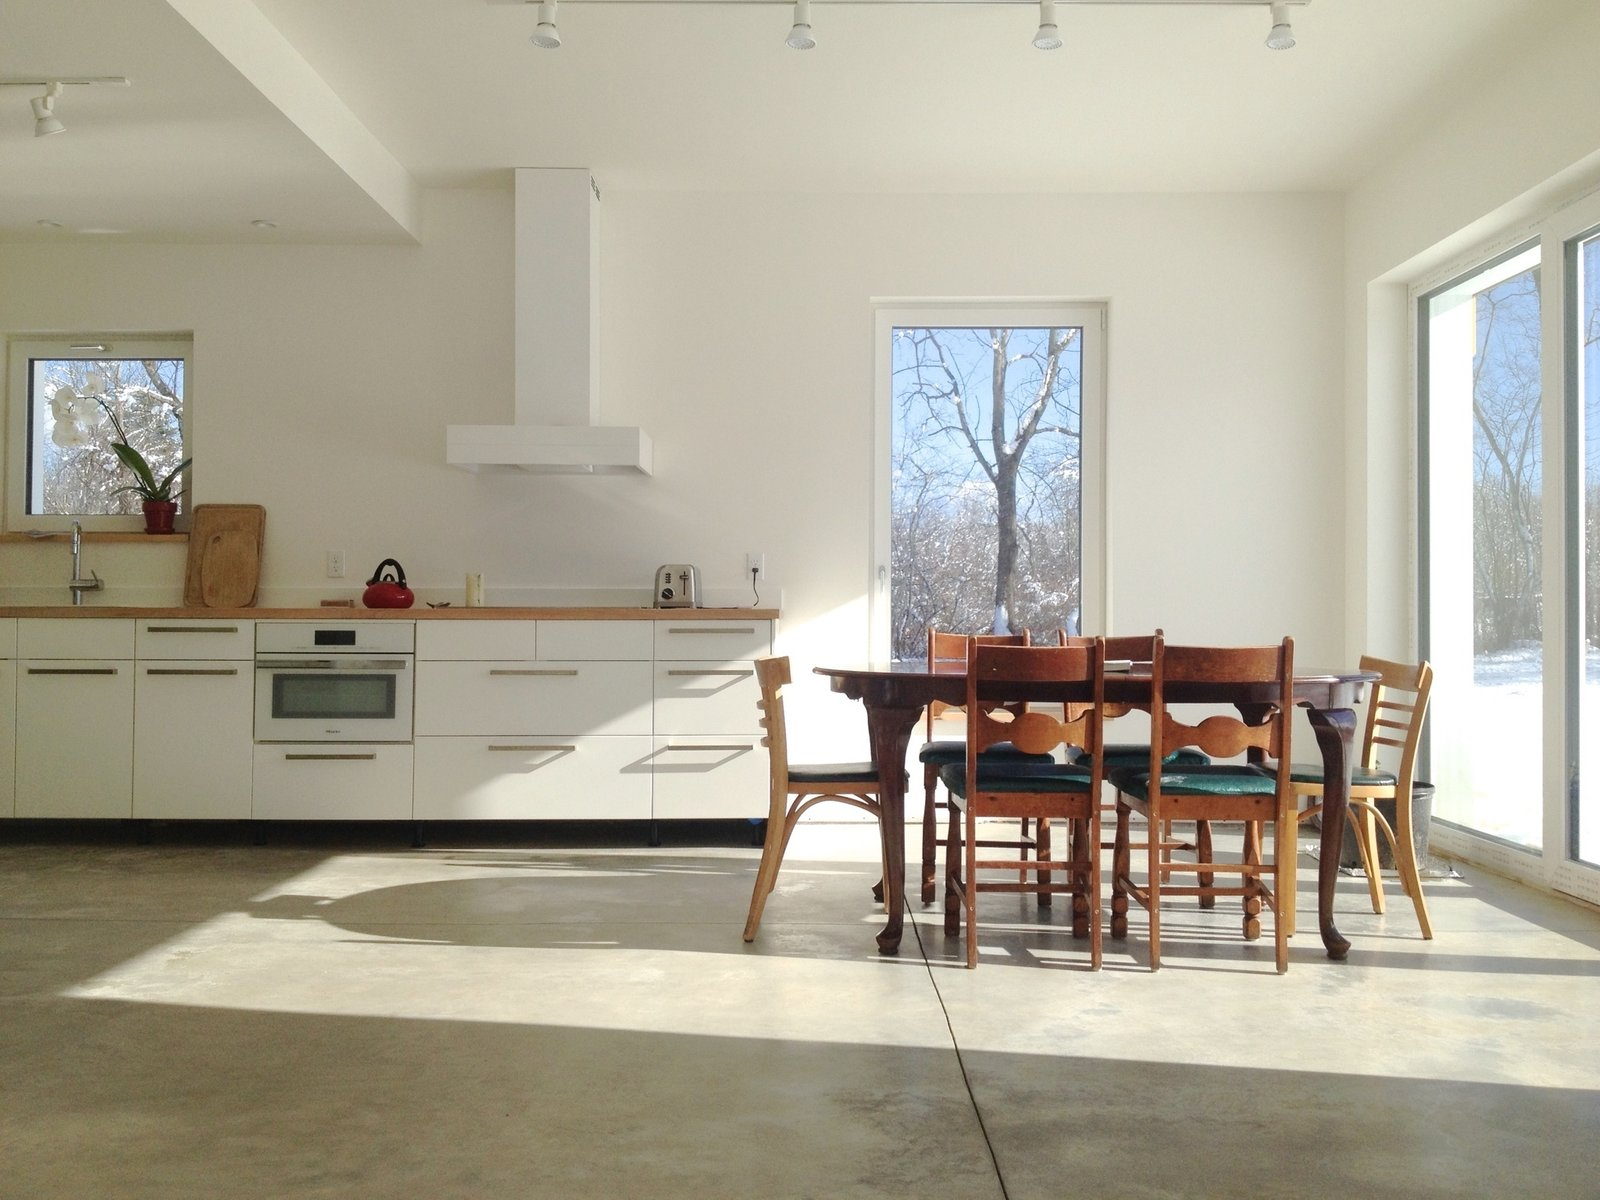 To adhere to Passivhaus standards, the house has a tightly-sealed shell, a smart ventilation system, and plenty of windows to let in natural light.